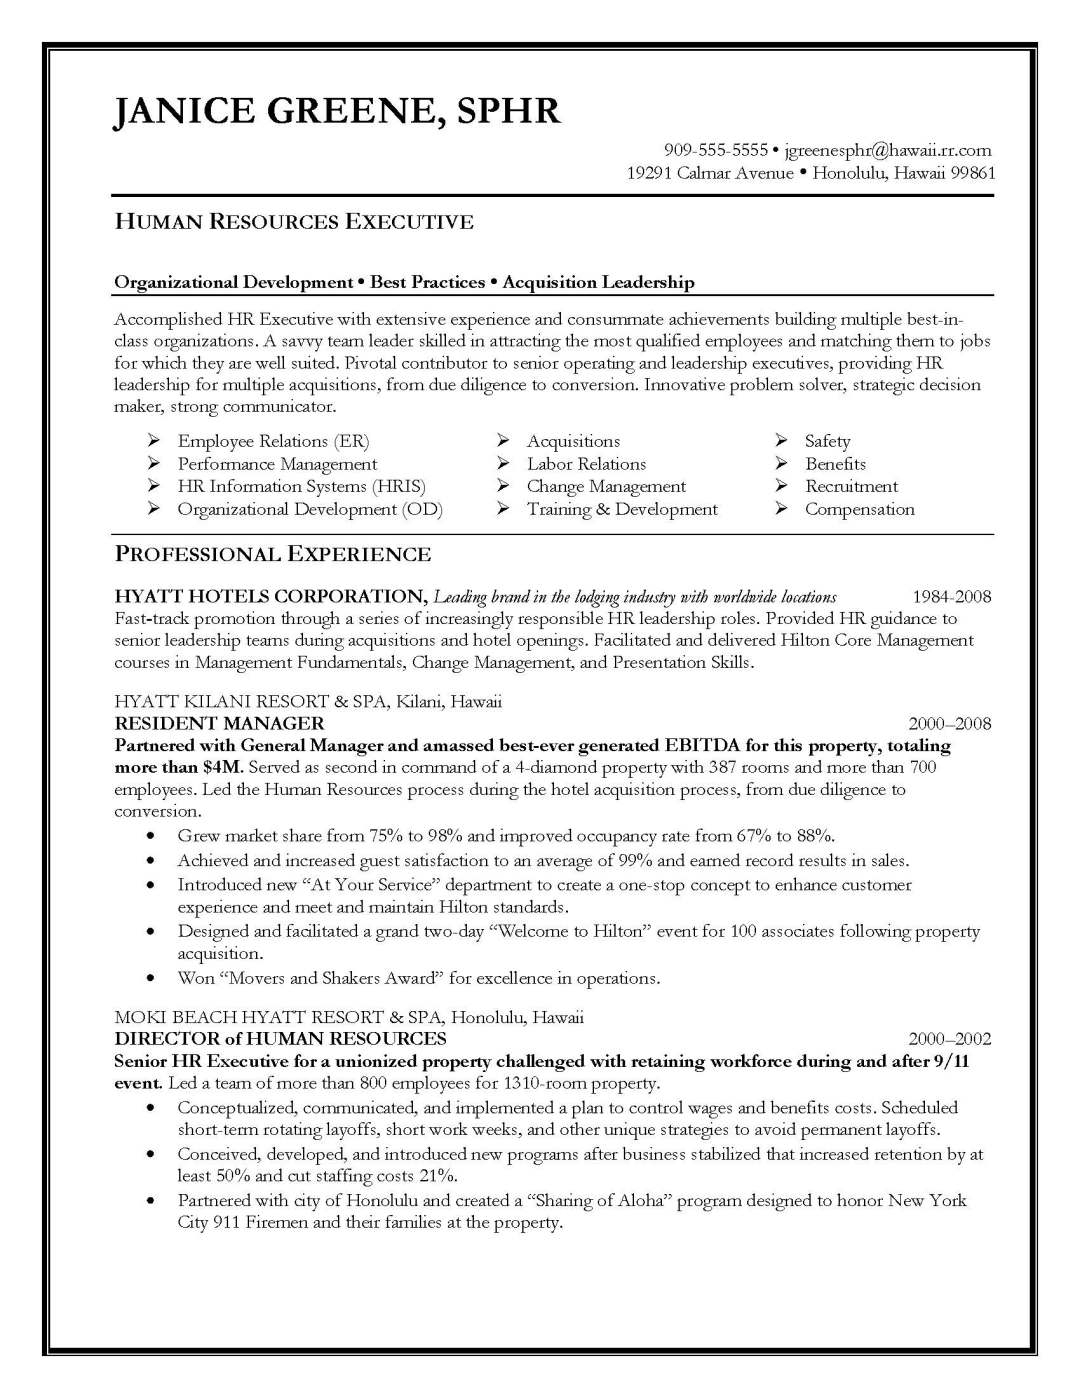 Self Employment Letter Template - Self Employed Cover Letter 23 Hr Business Partner Cover Letter